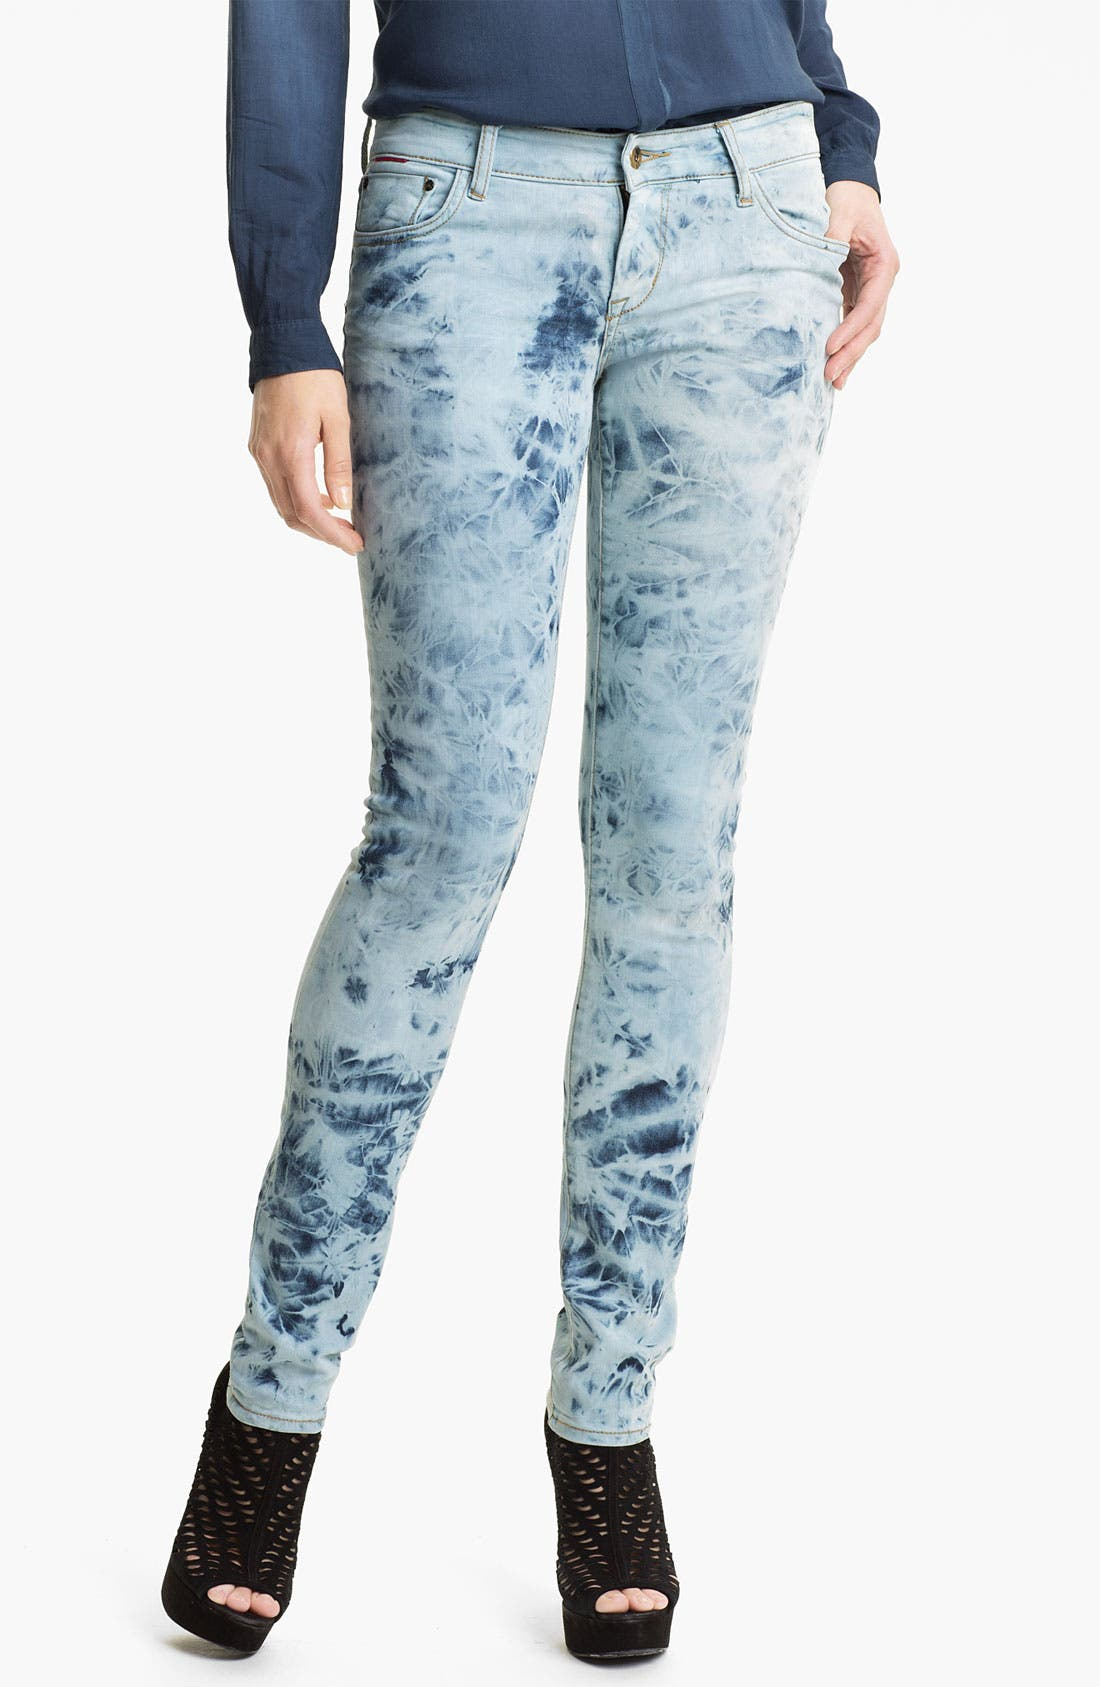 Alternate Image 1 Selected - !iT Collective Tie Dye Skinny Jeans (Activist) (Online Exclusive)